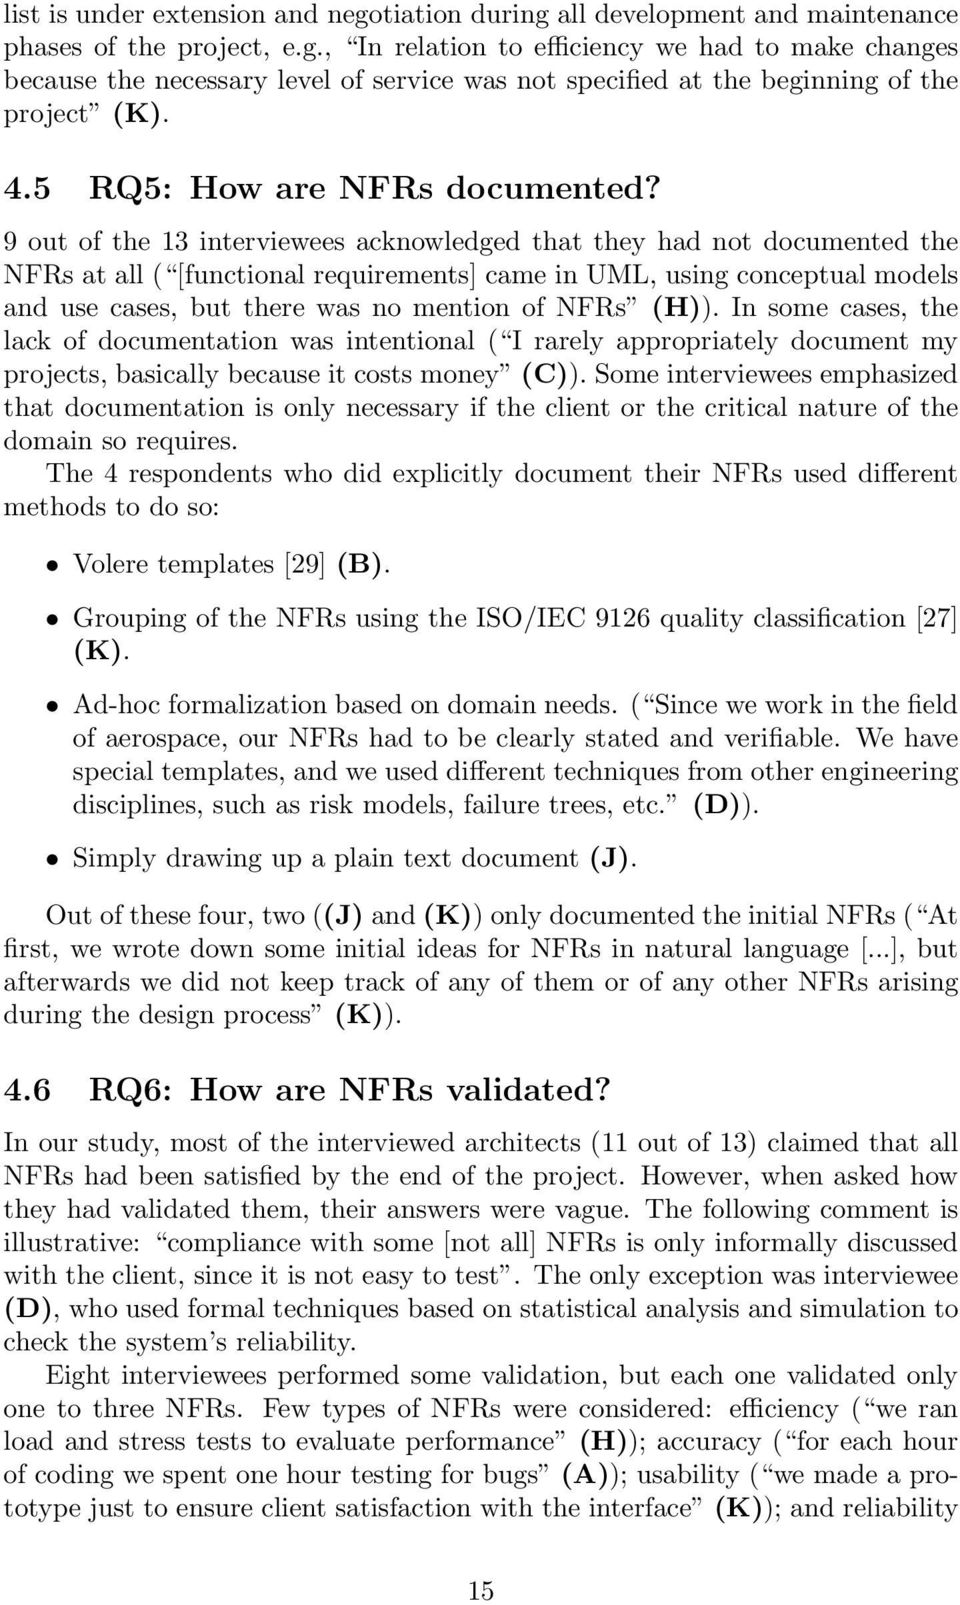 9 out of the 13 interviewees acknowledged that they had not documented the NFRs at all ( [functional requirements] came in UML, using conceptual models and use cases, but there was no mention of NFRs